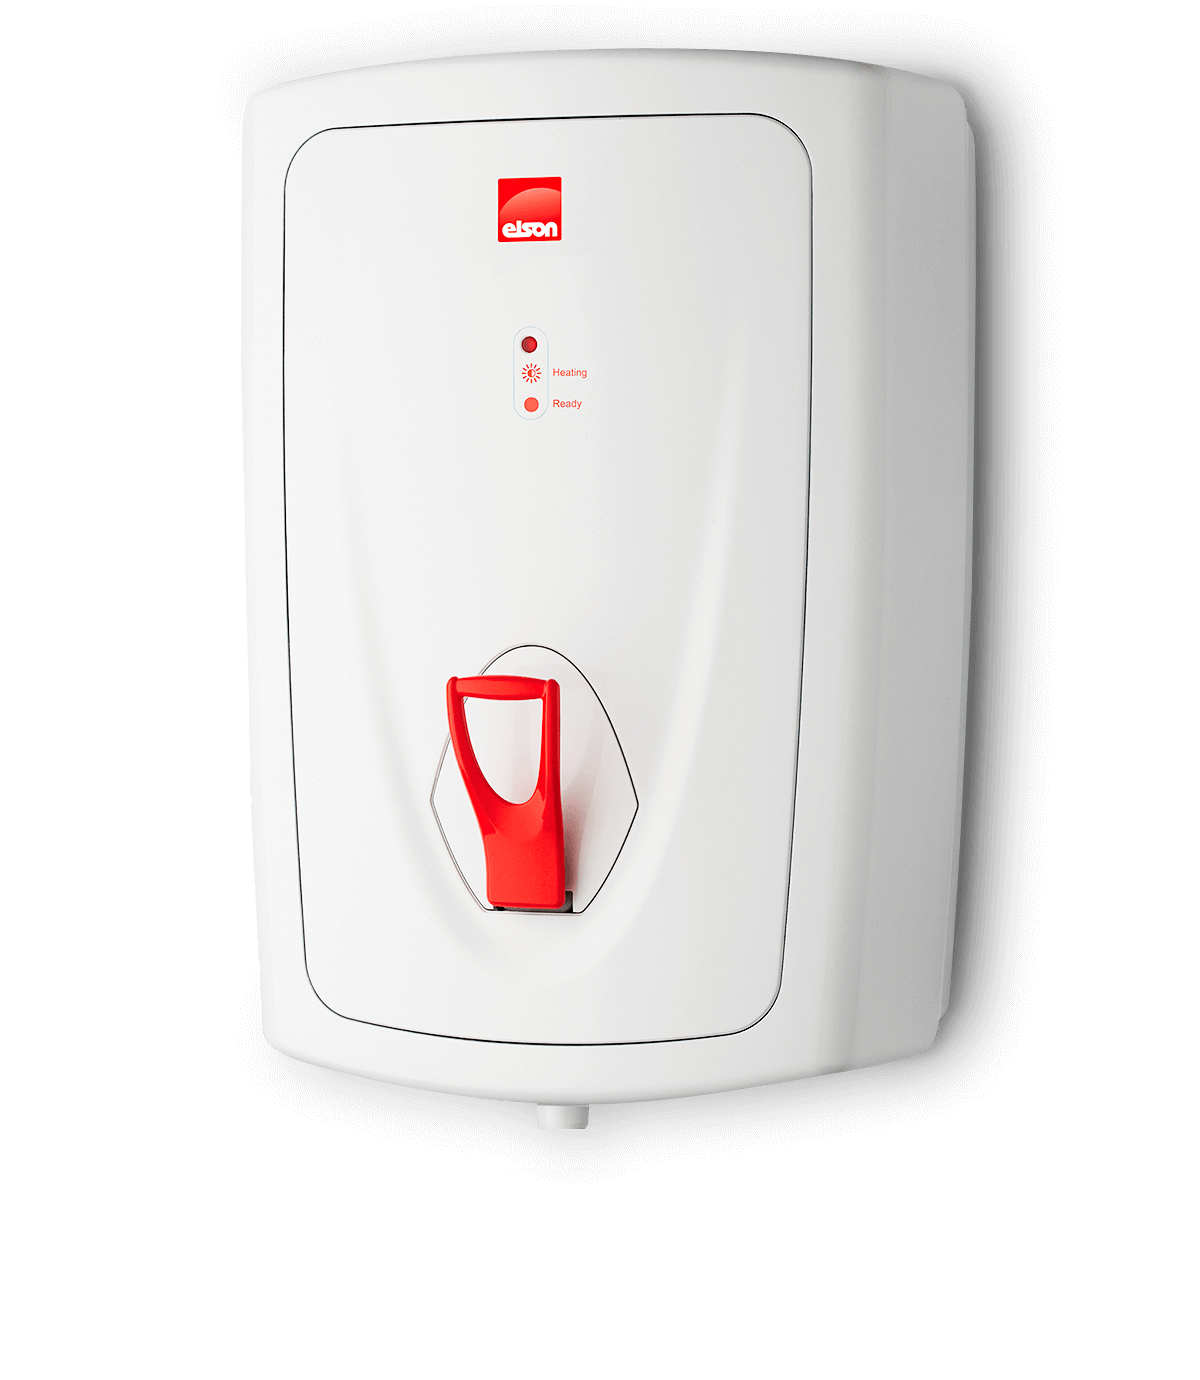 EBW25 boiling water heater banner image.